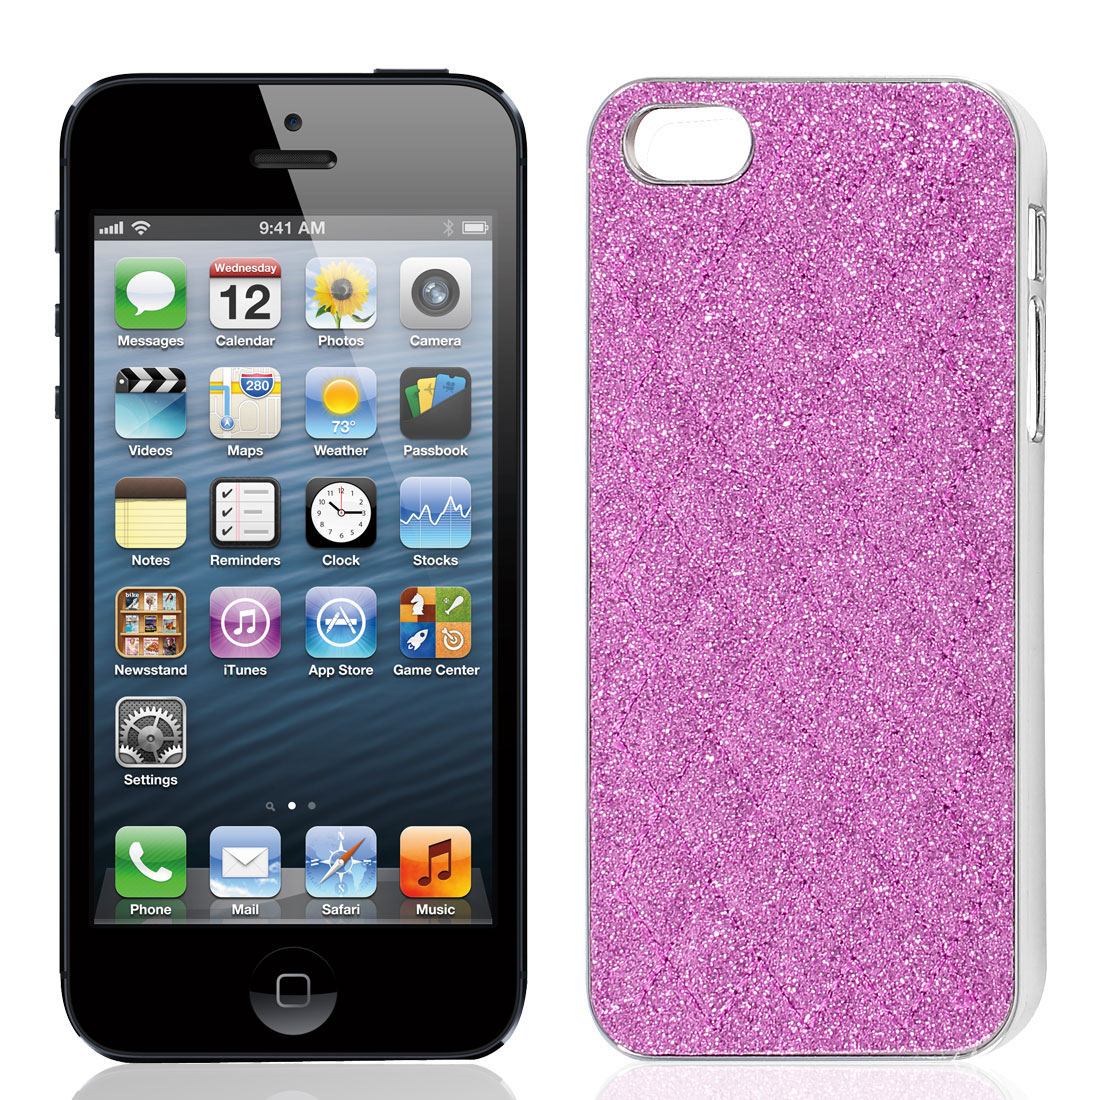 Fuchsia Glitter Powder Argyle Pattern Back Case Cover Shell for iPhone 5 5G 5th